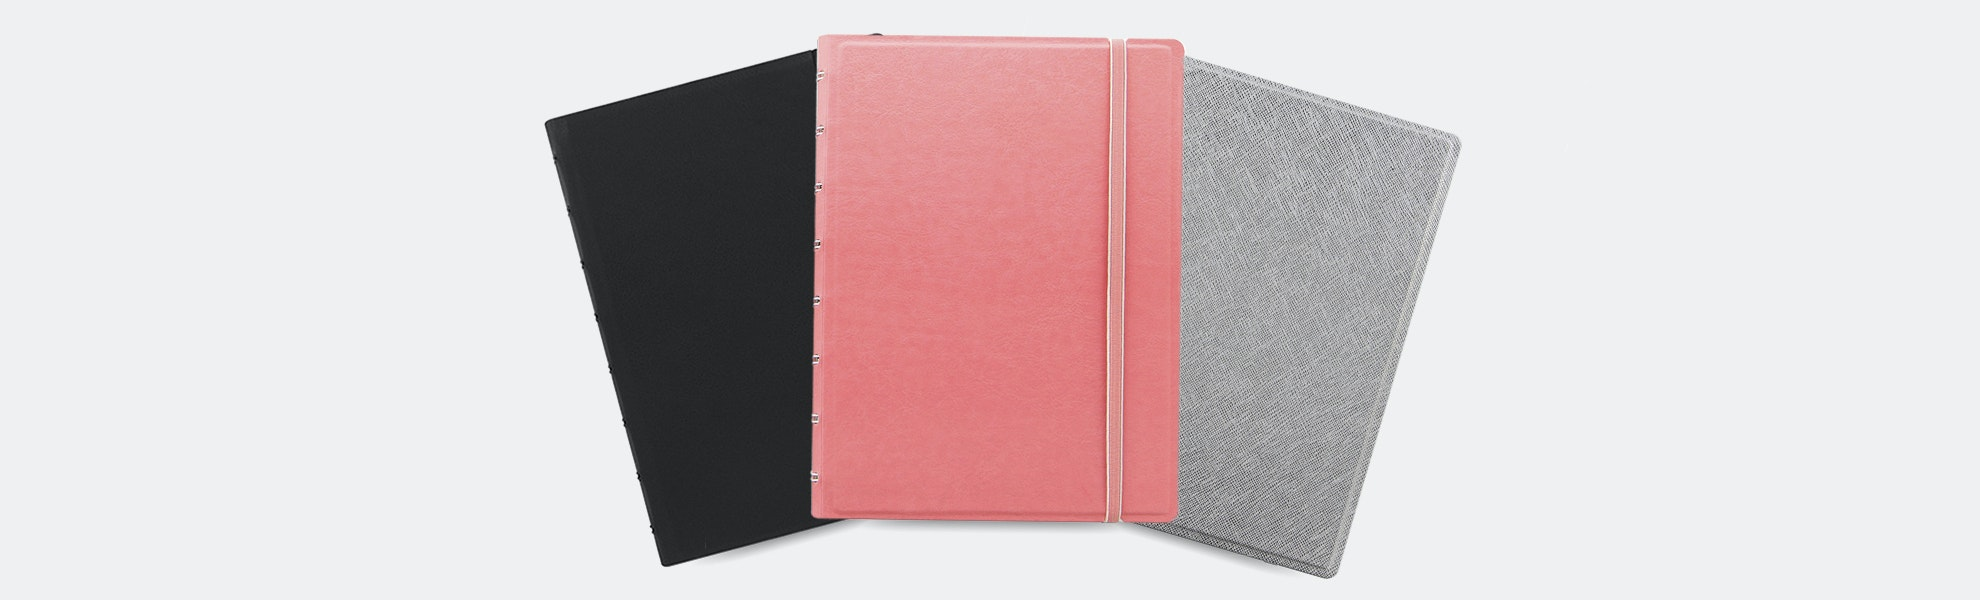 Filofax A5 Notebooks (3-Pack)